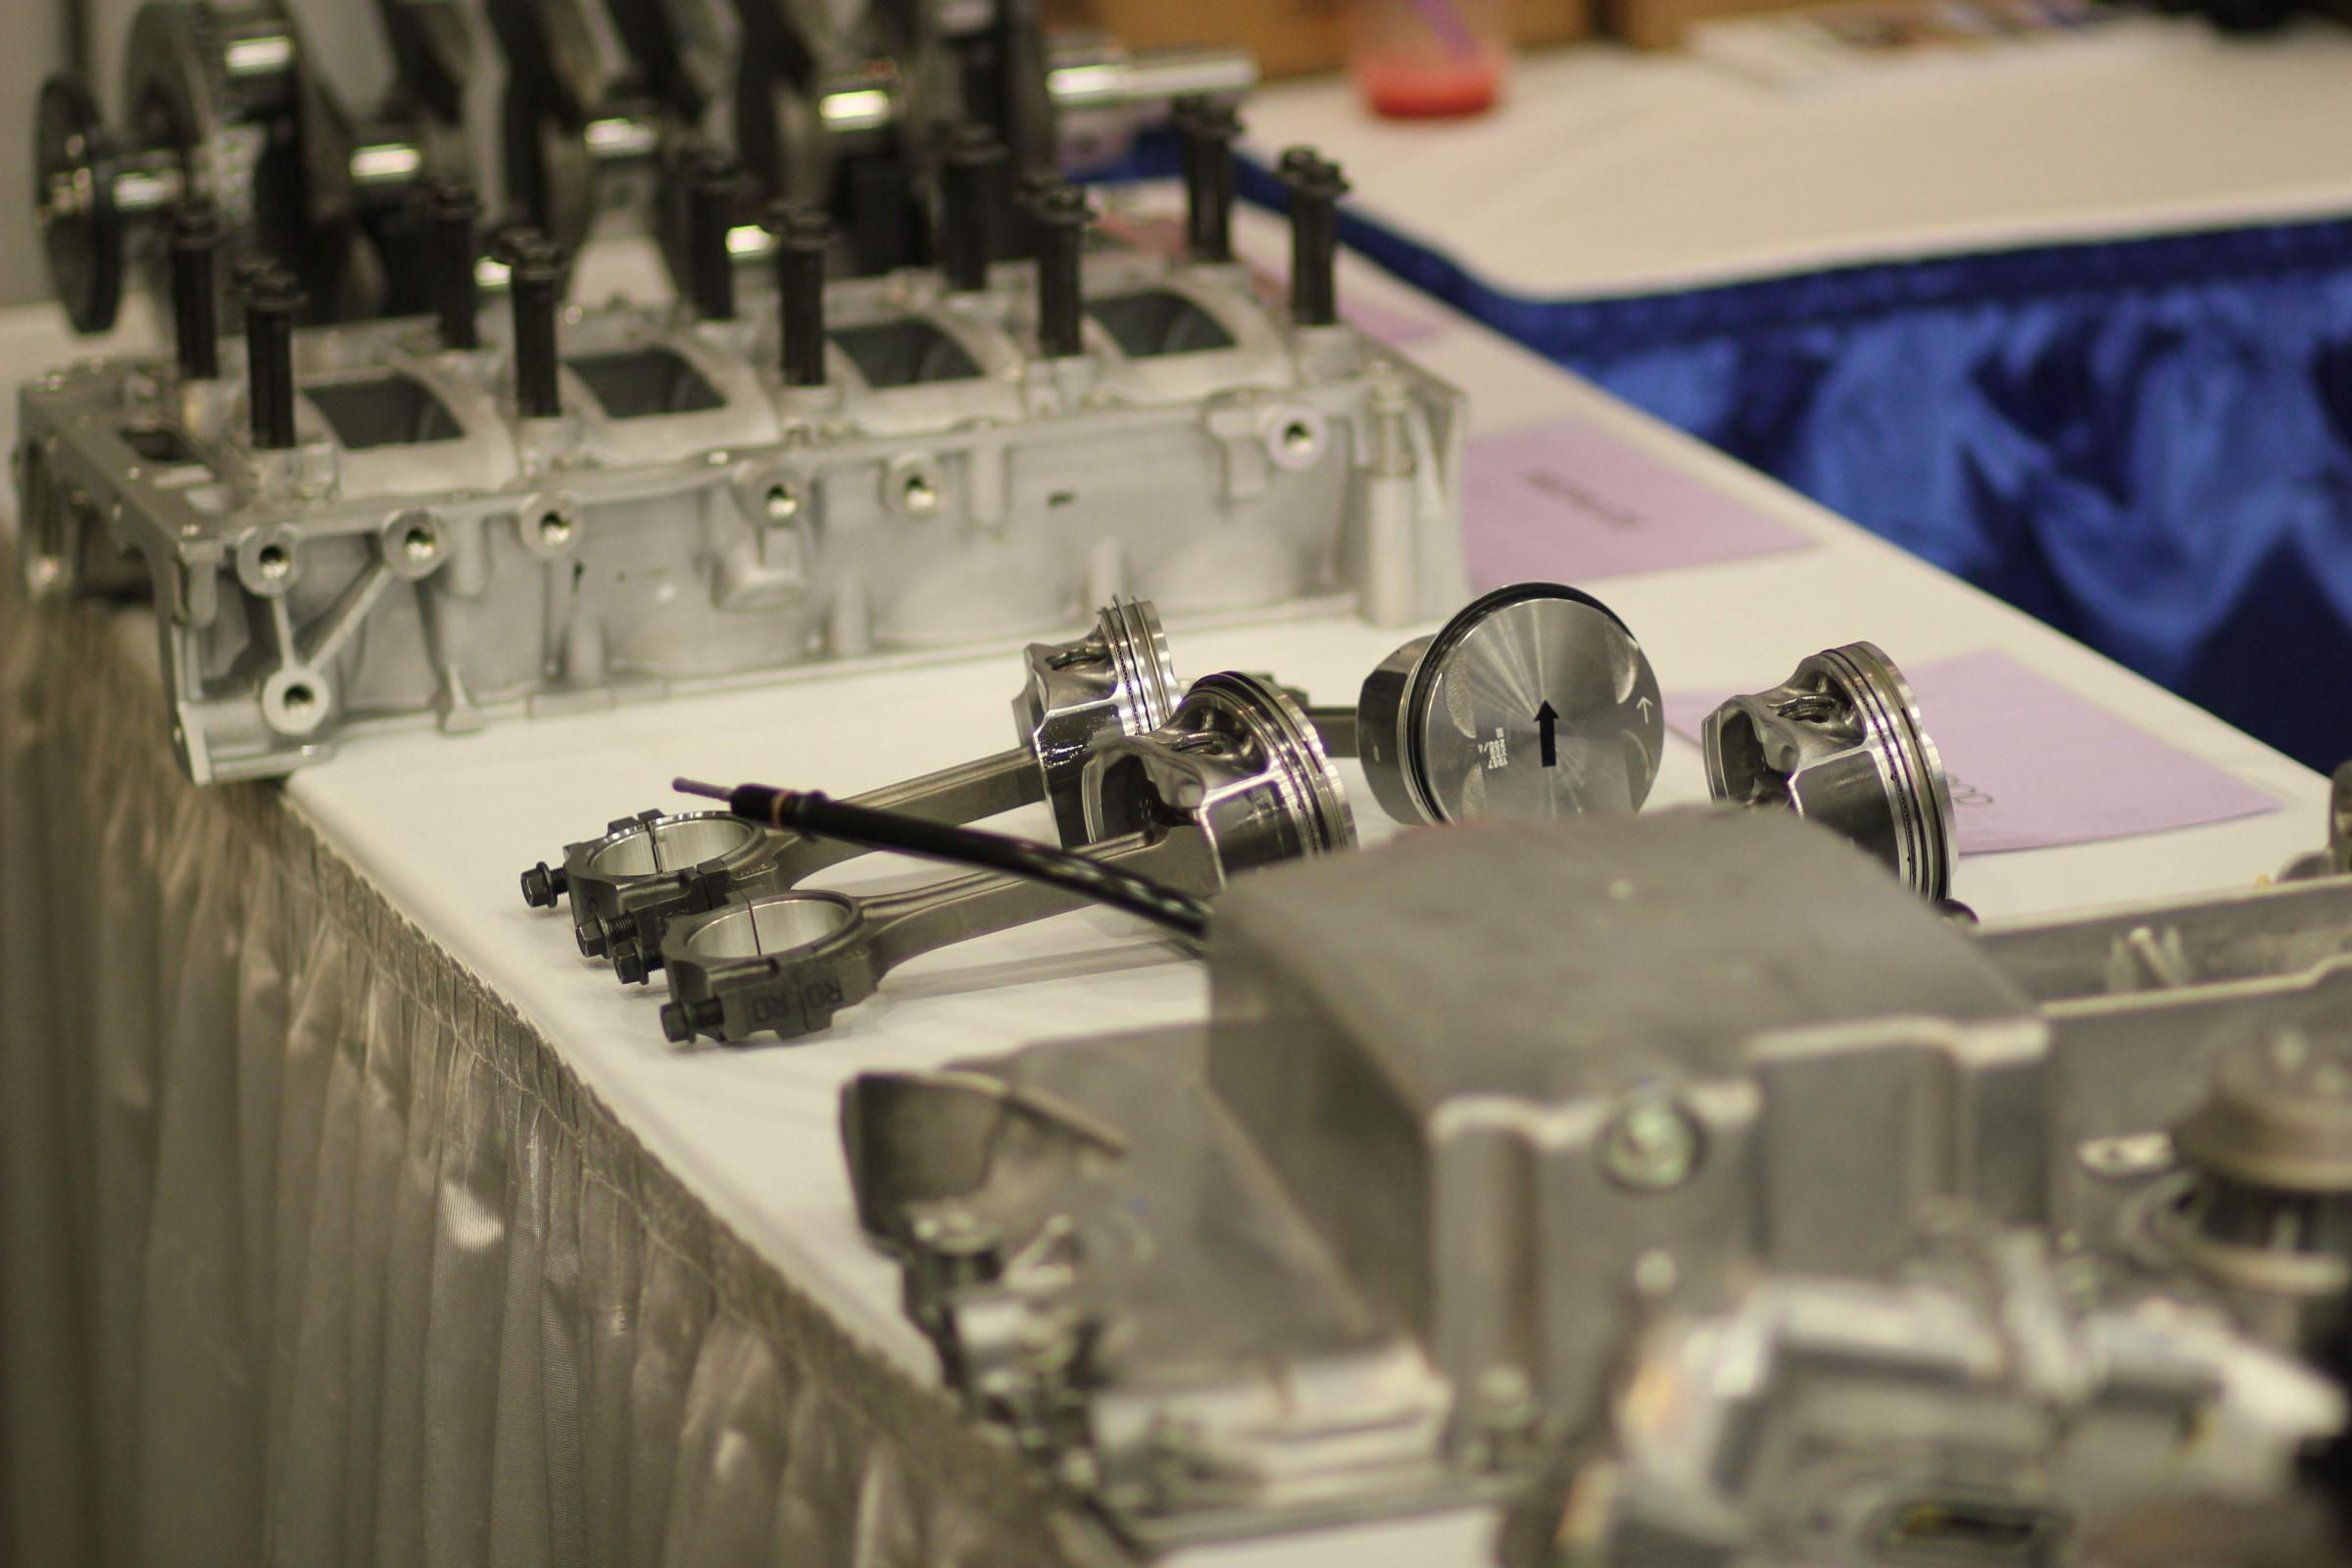 Buffalo Auto Show Highlights Local Wheels Innovation Trail Gm Ecotec Engine Pieces Of A New Which The Tonawanda Plant Will Build